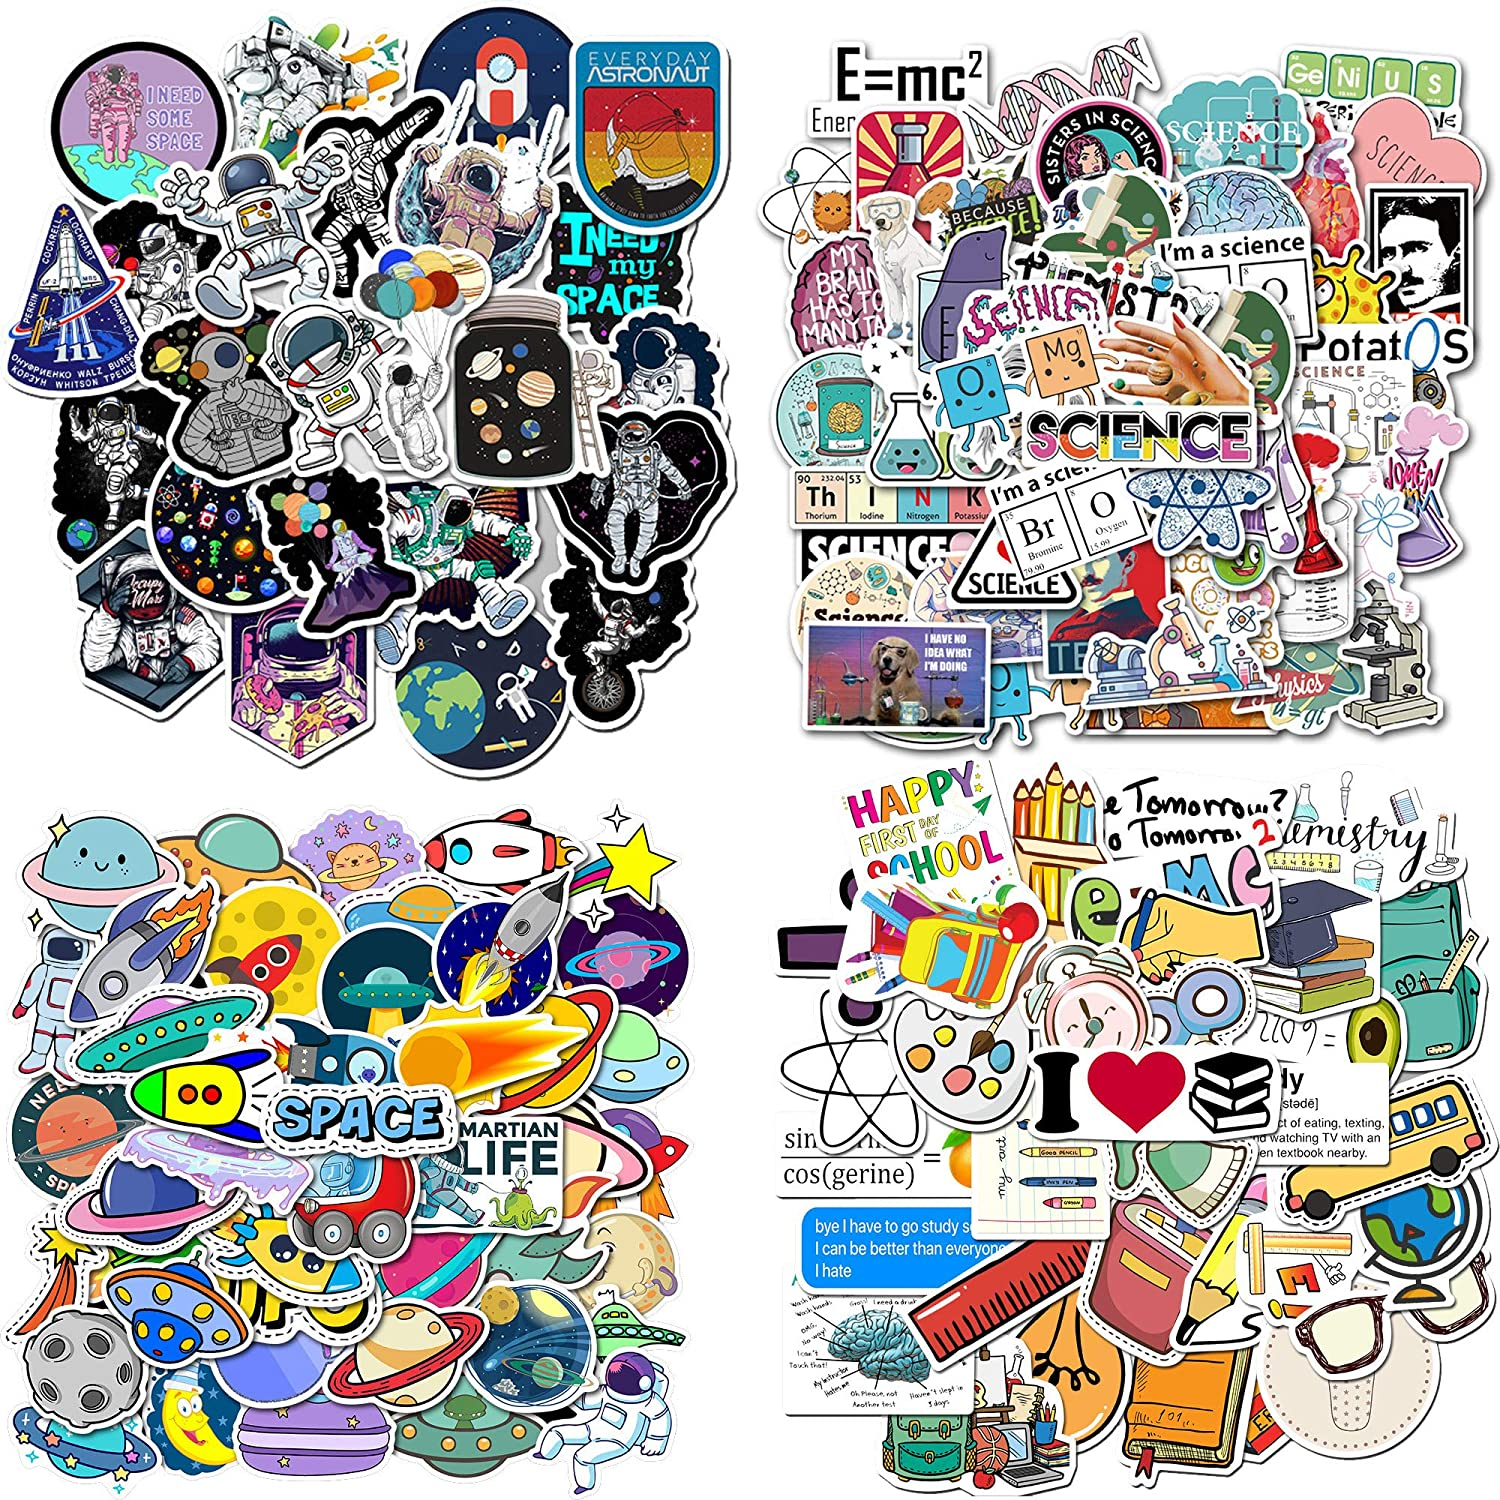 FUNCSDIK 200PCS Graffiti Stickers Waterproof PVC Science School Astronaut Space Stickers for Children, Students, Teens, Laptop, Water Bottle, Phone, Luggage, Skateboard (School Science)